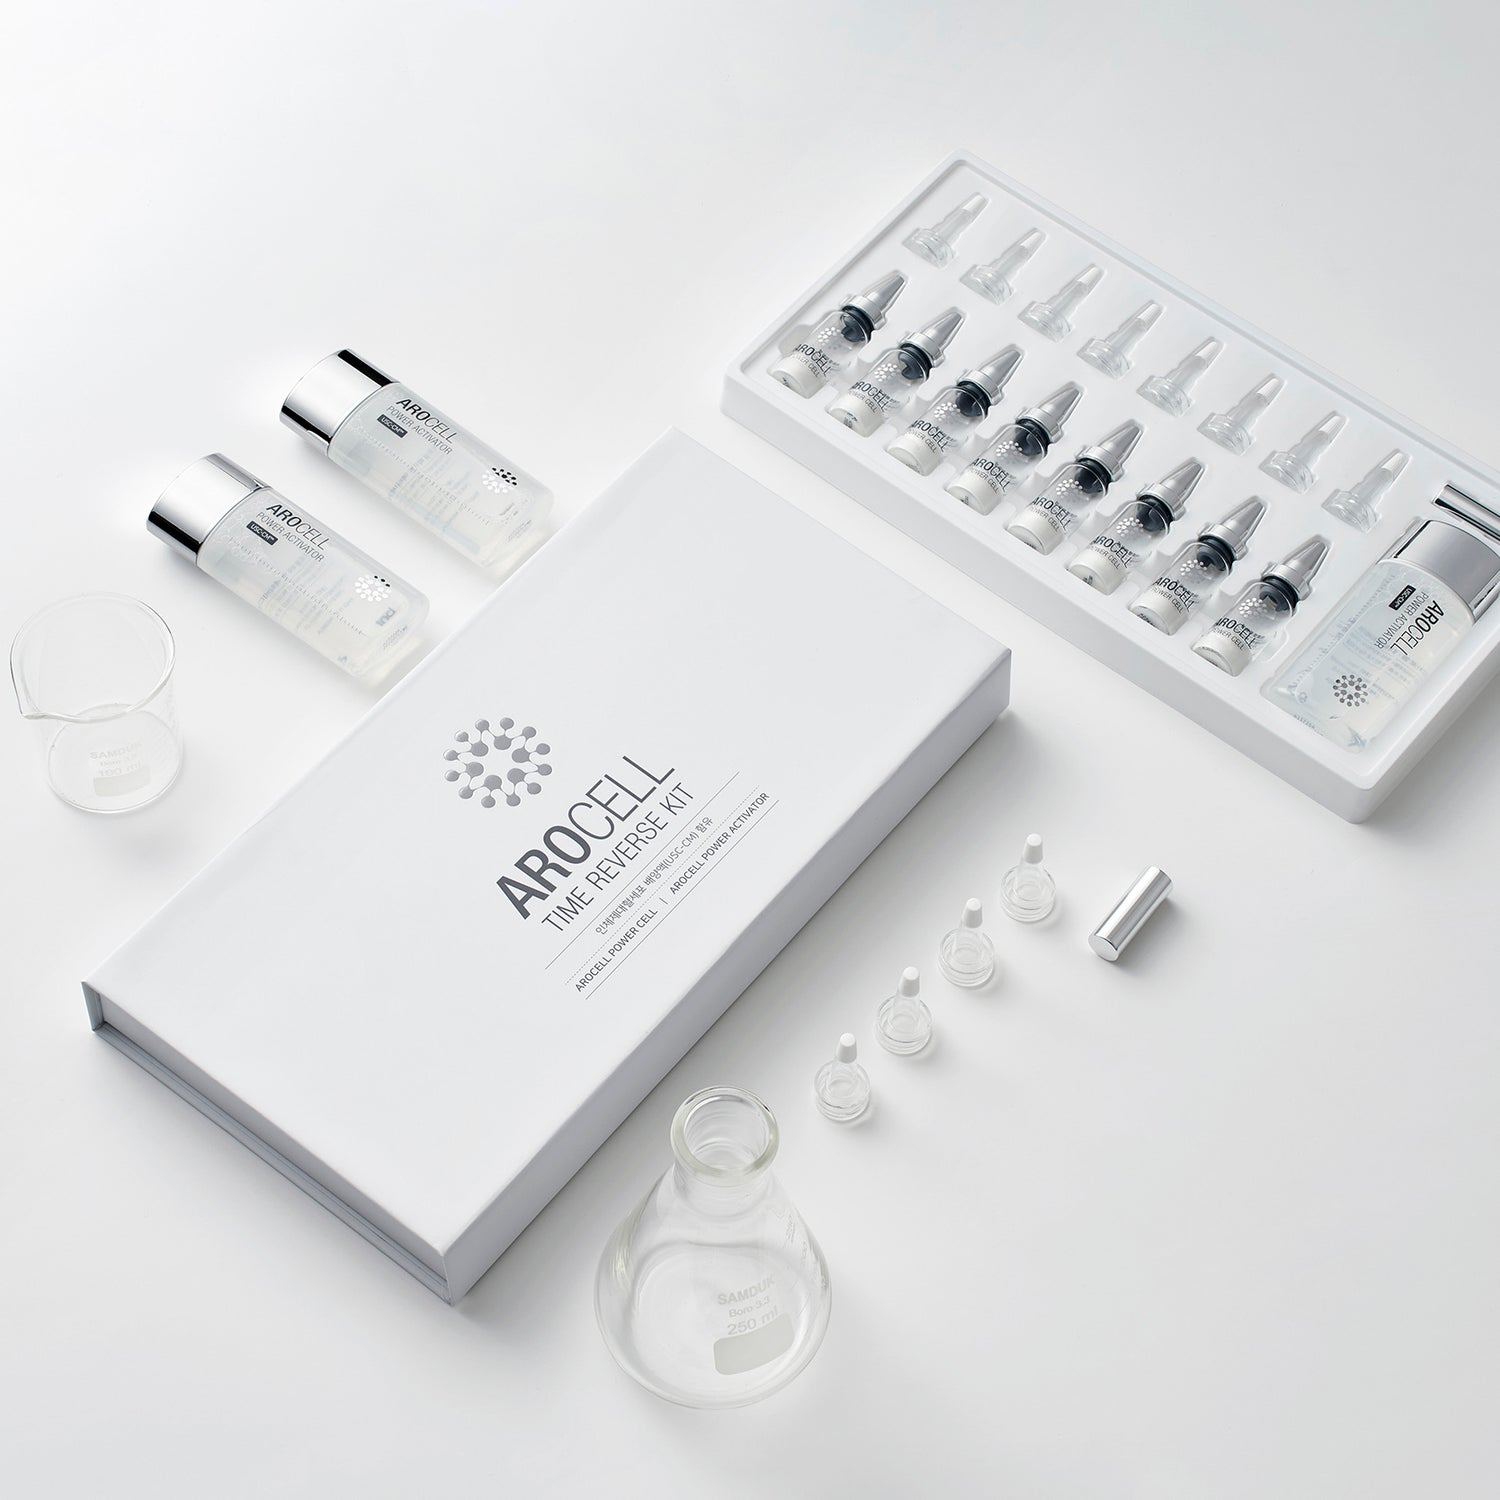 AROCELL Time Reverse Ampoules Kit (회춘앰플)